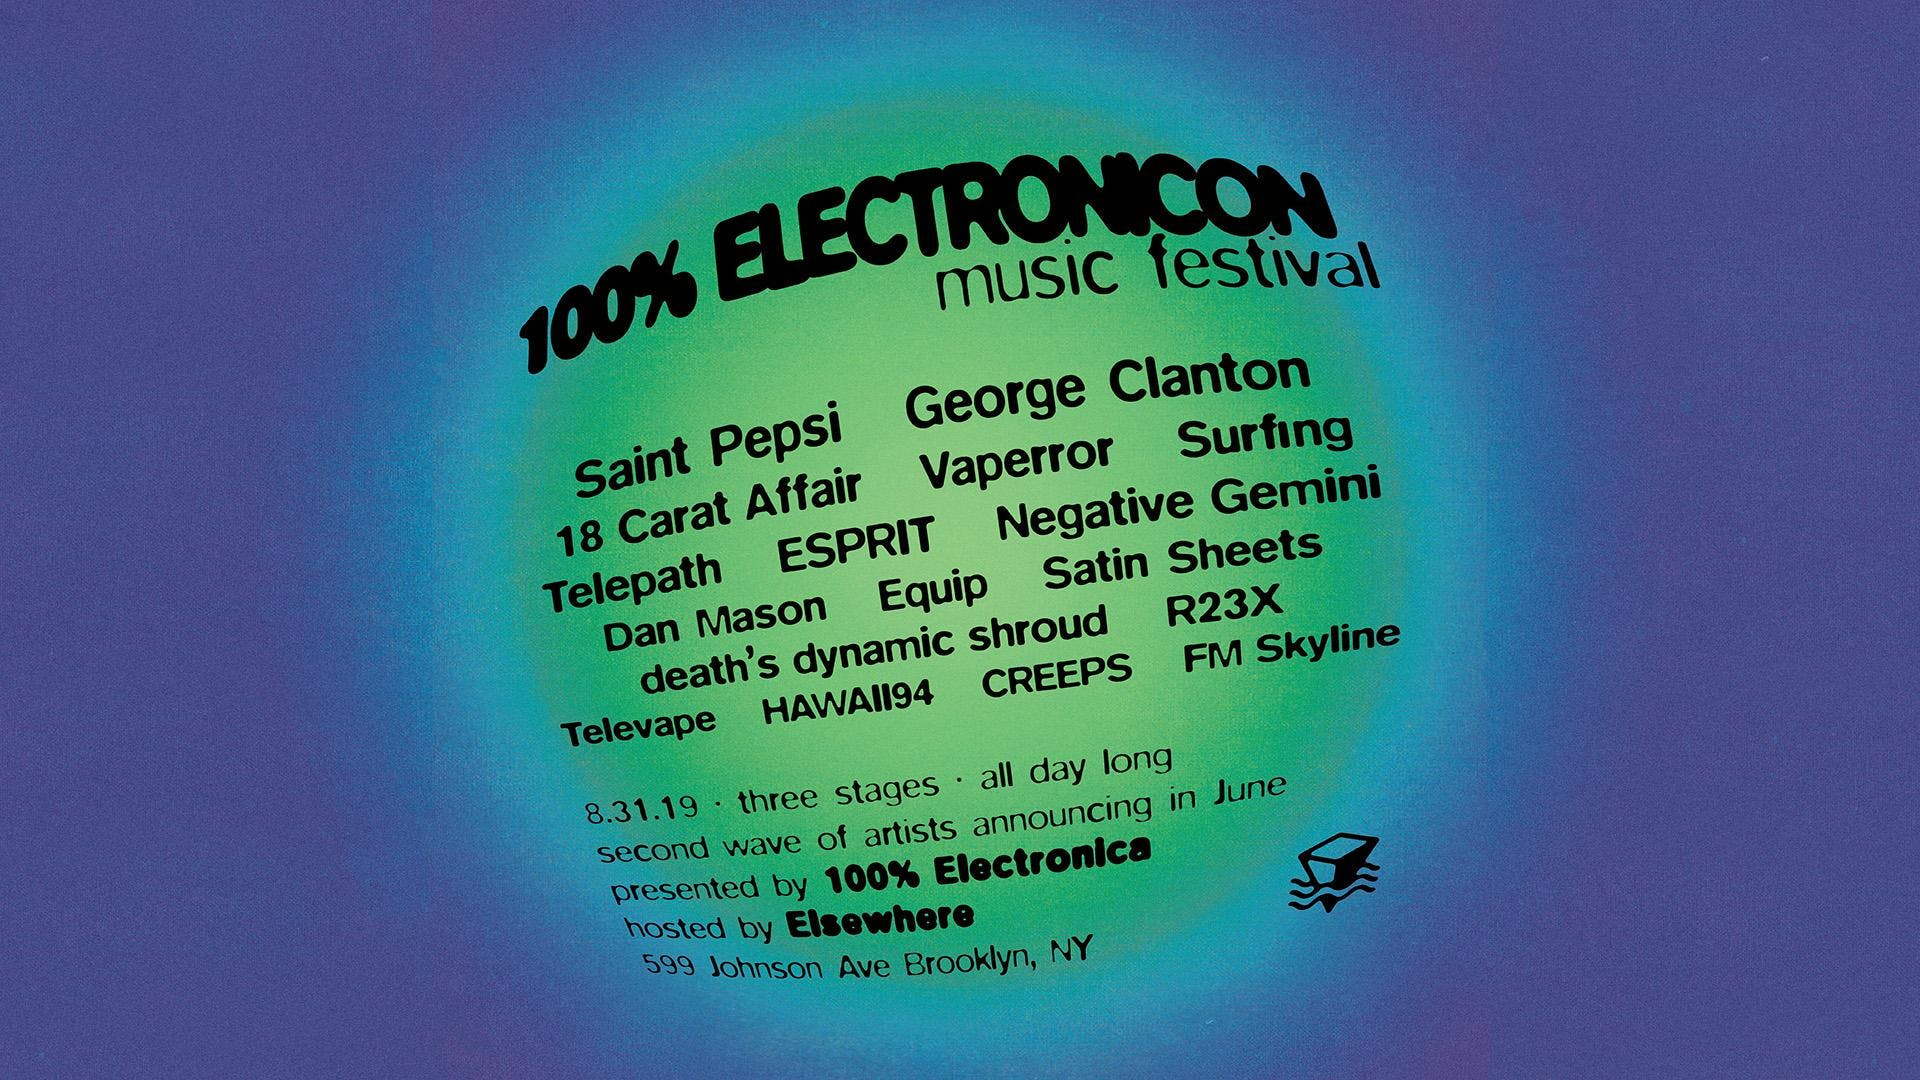 100% ELECTRONICON IS SOLD OUT!!! NEGATIVE GEMINI WILL SEE YOU THERE AUGUST 31ST 2019 IN BROOKLYN, NEW YORK AT ELSEWHERE.